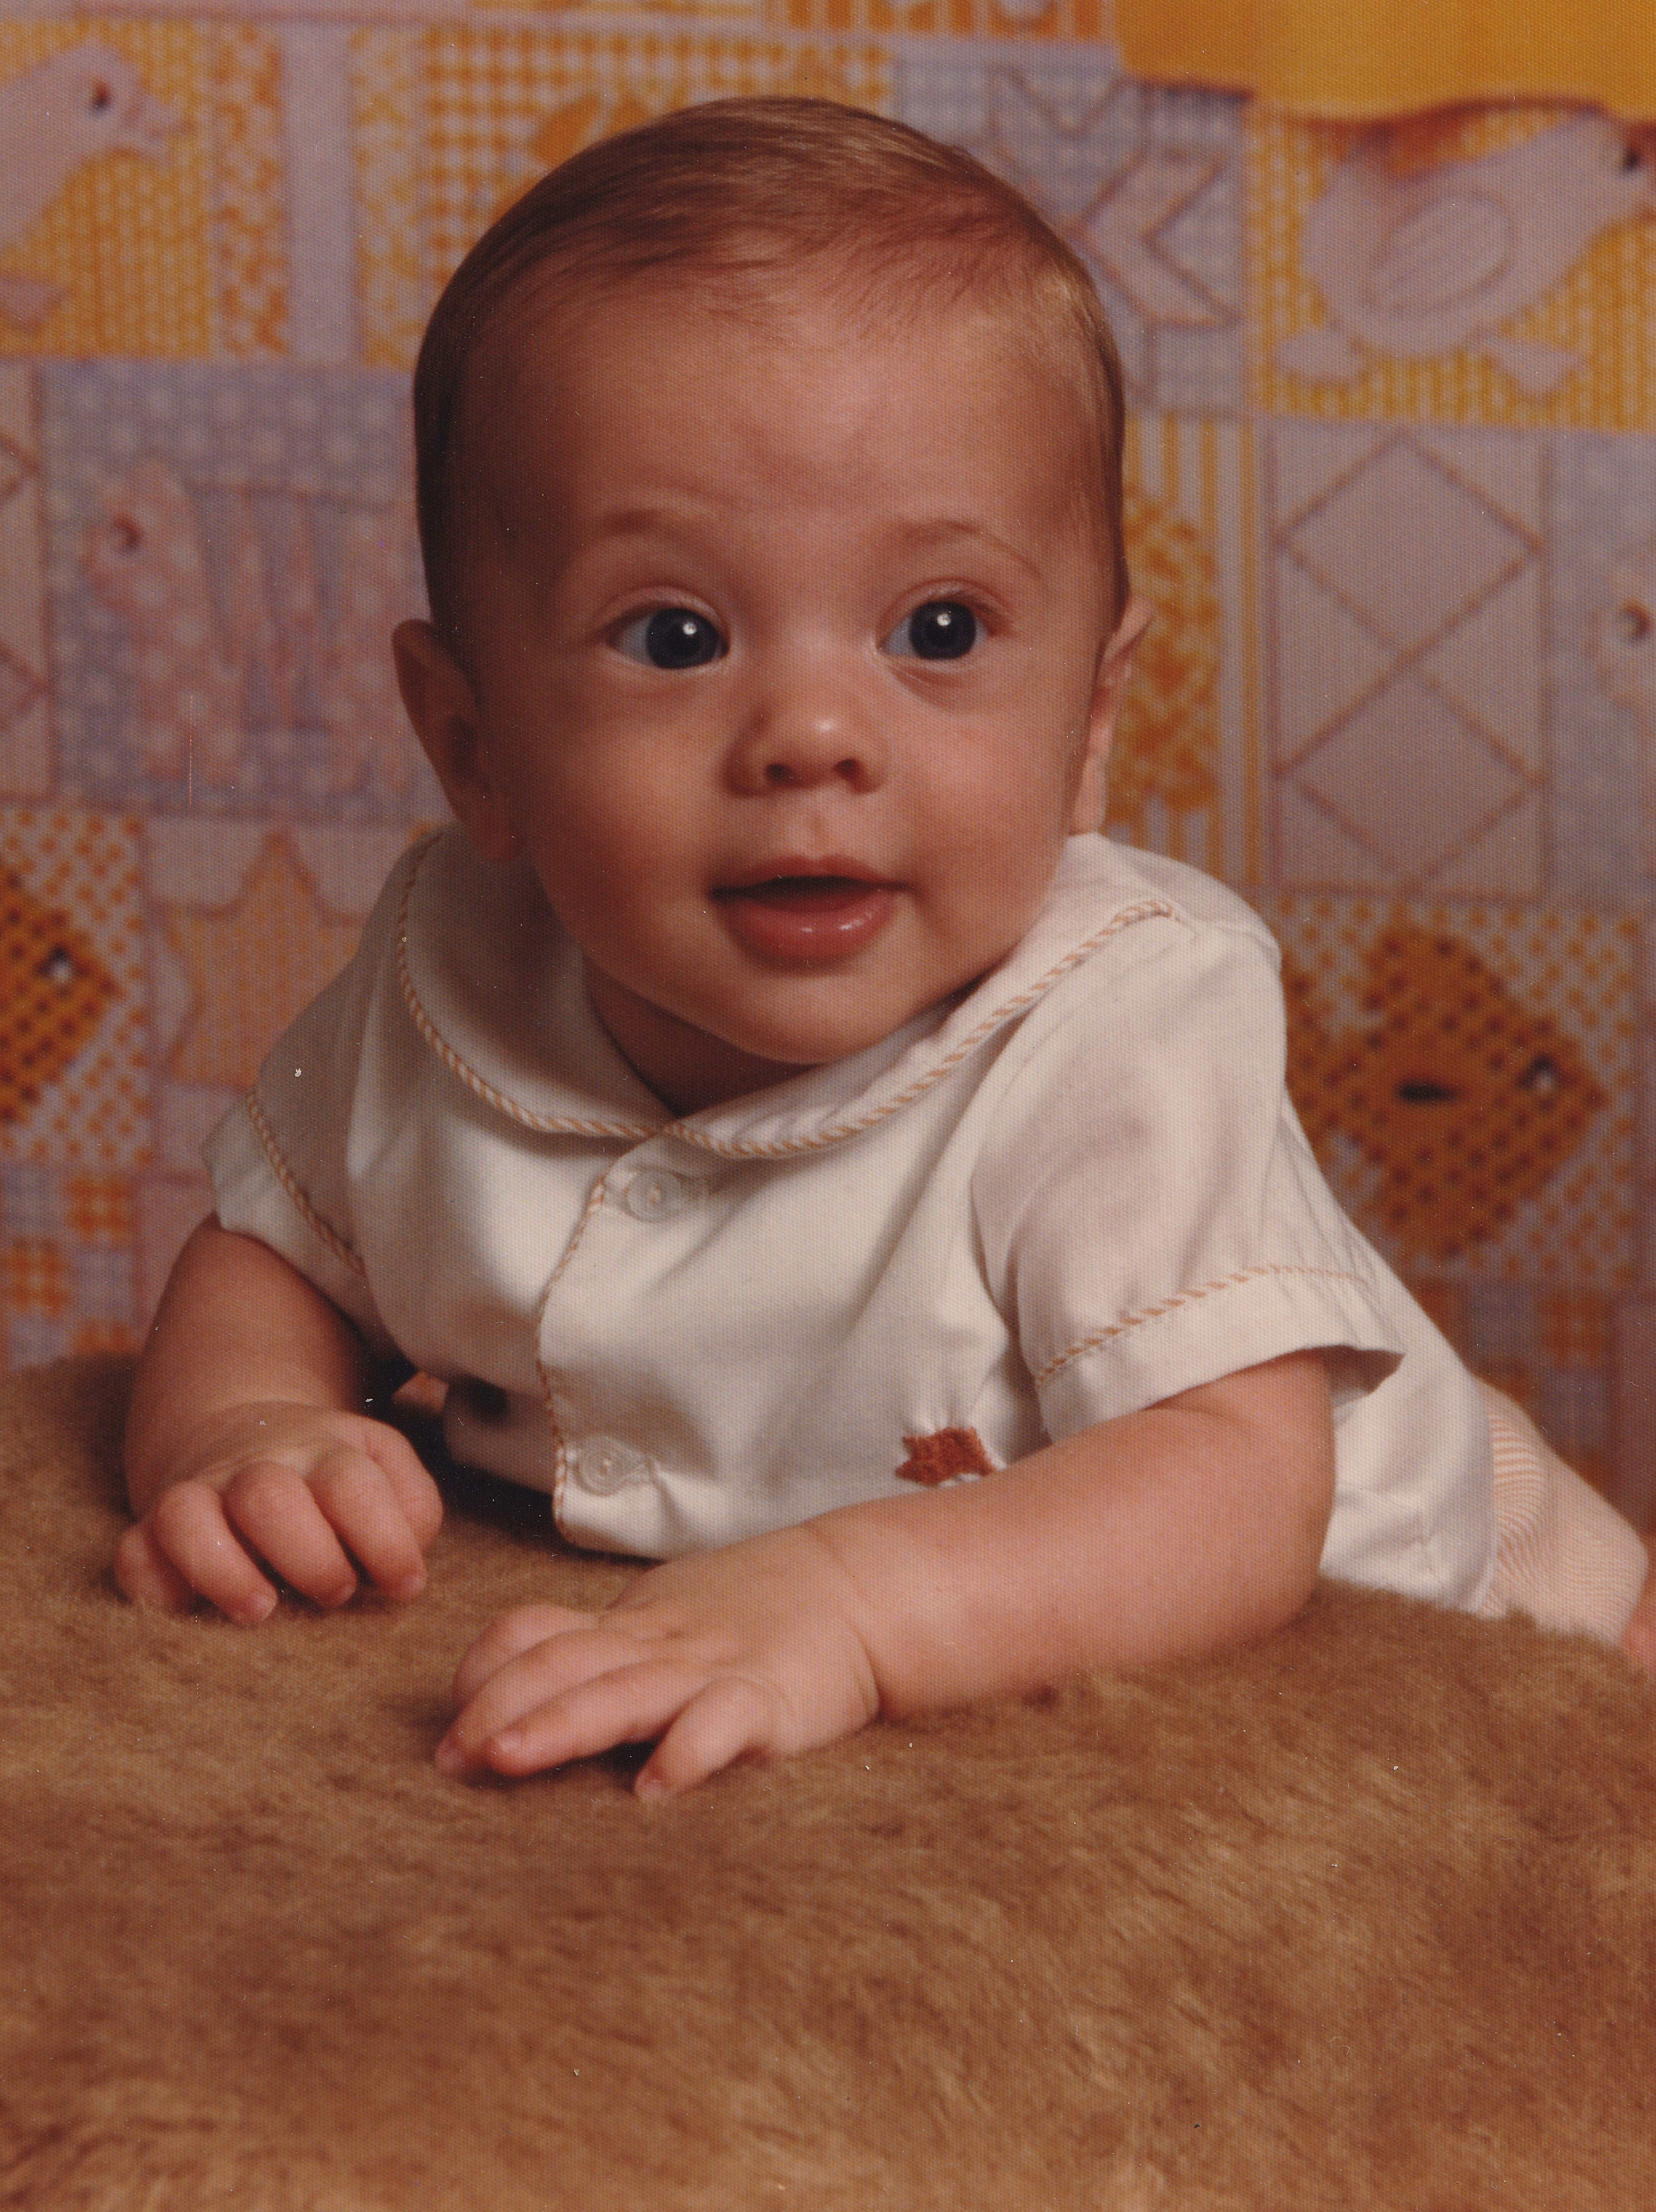 jake as a baby